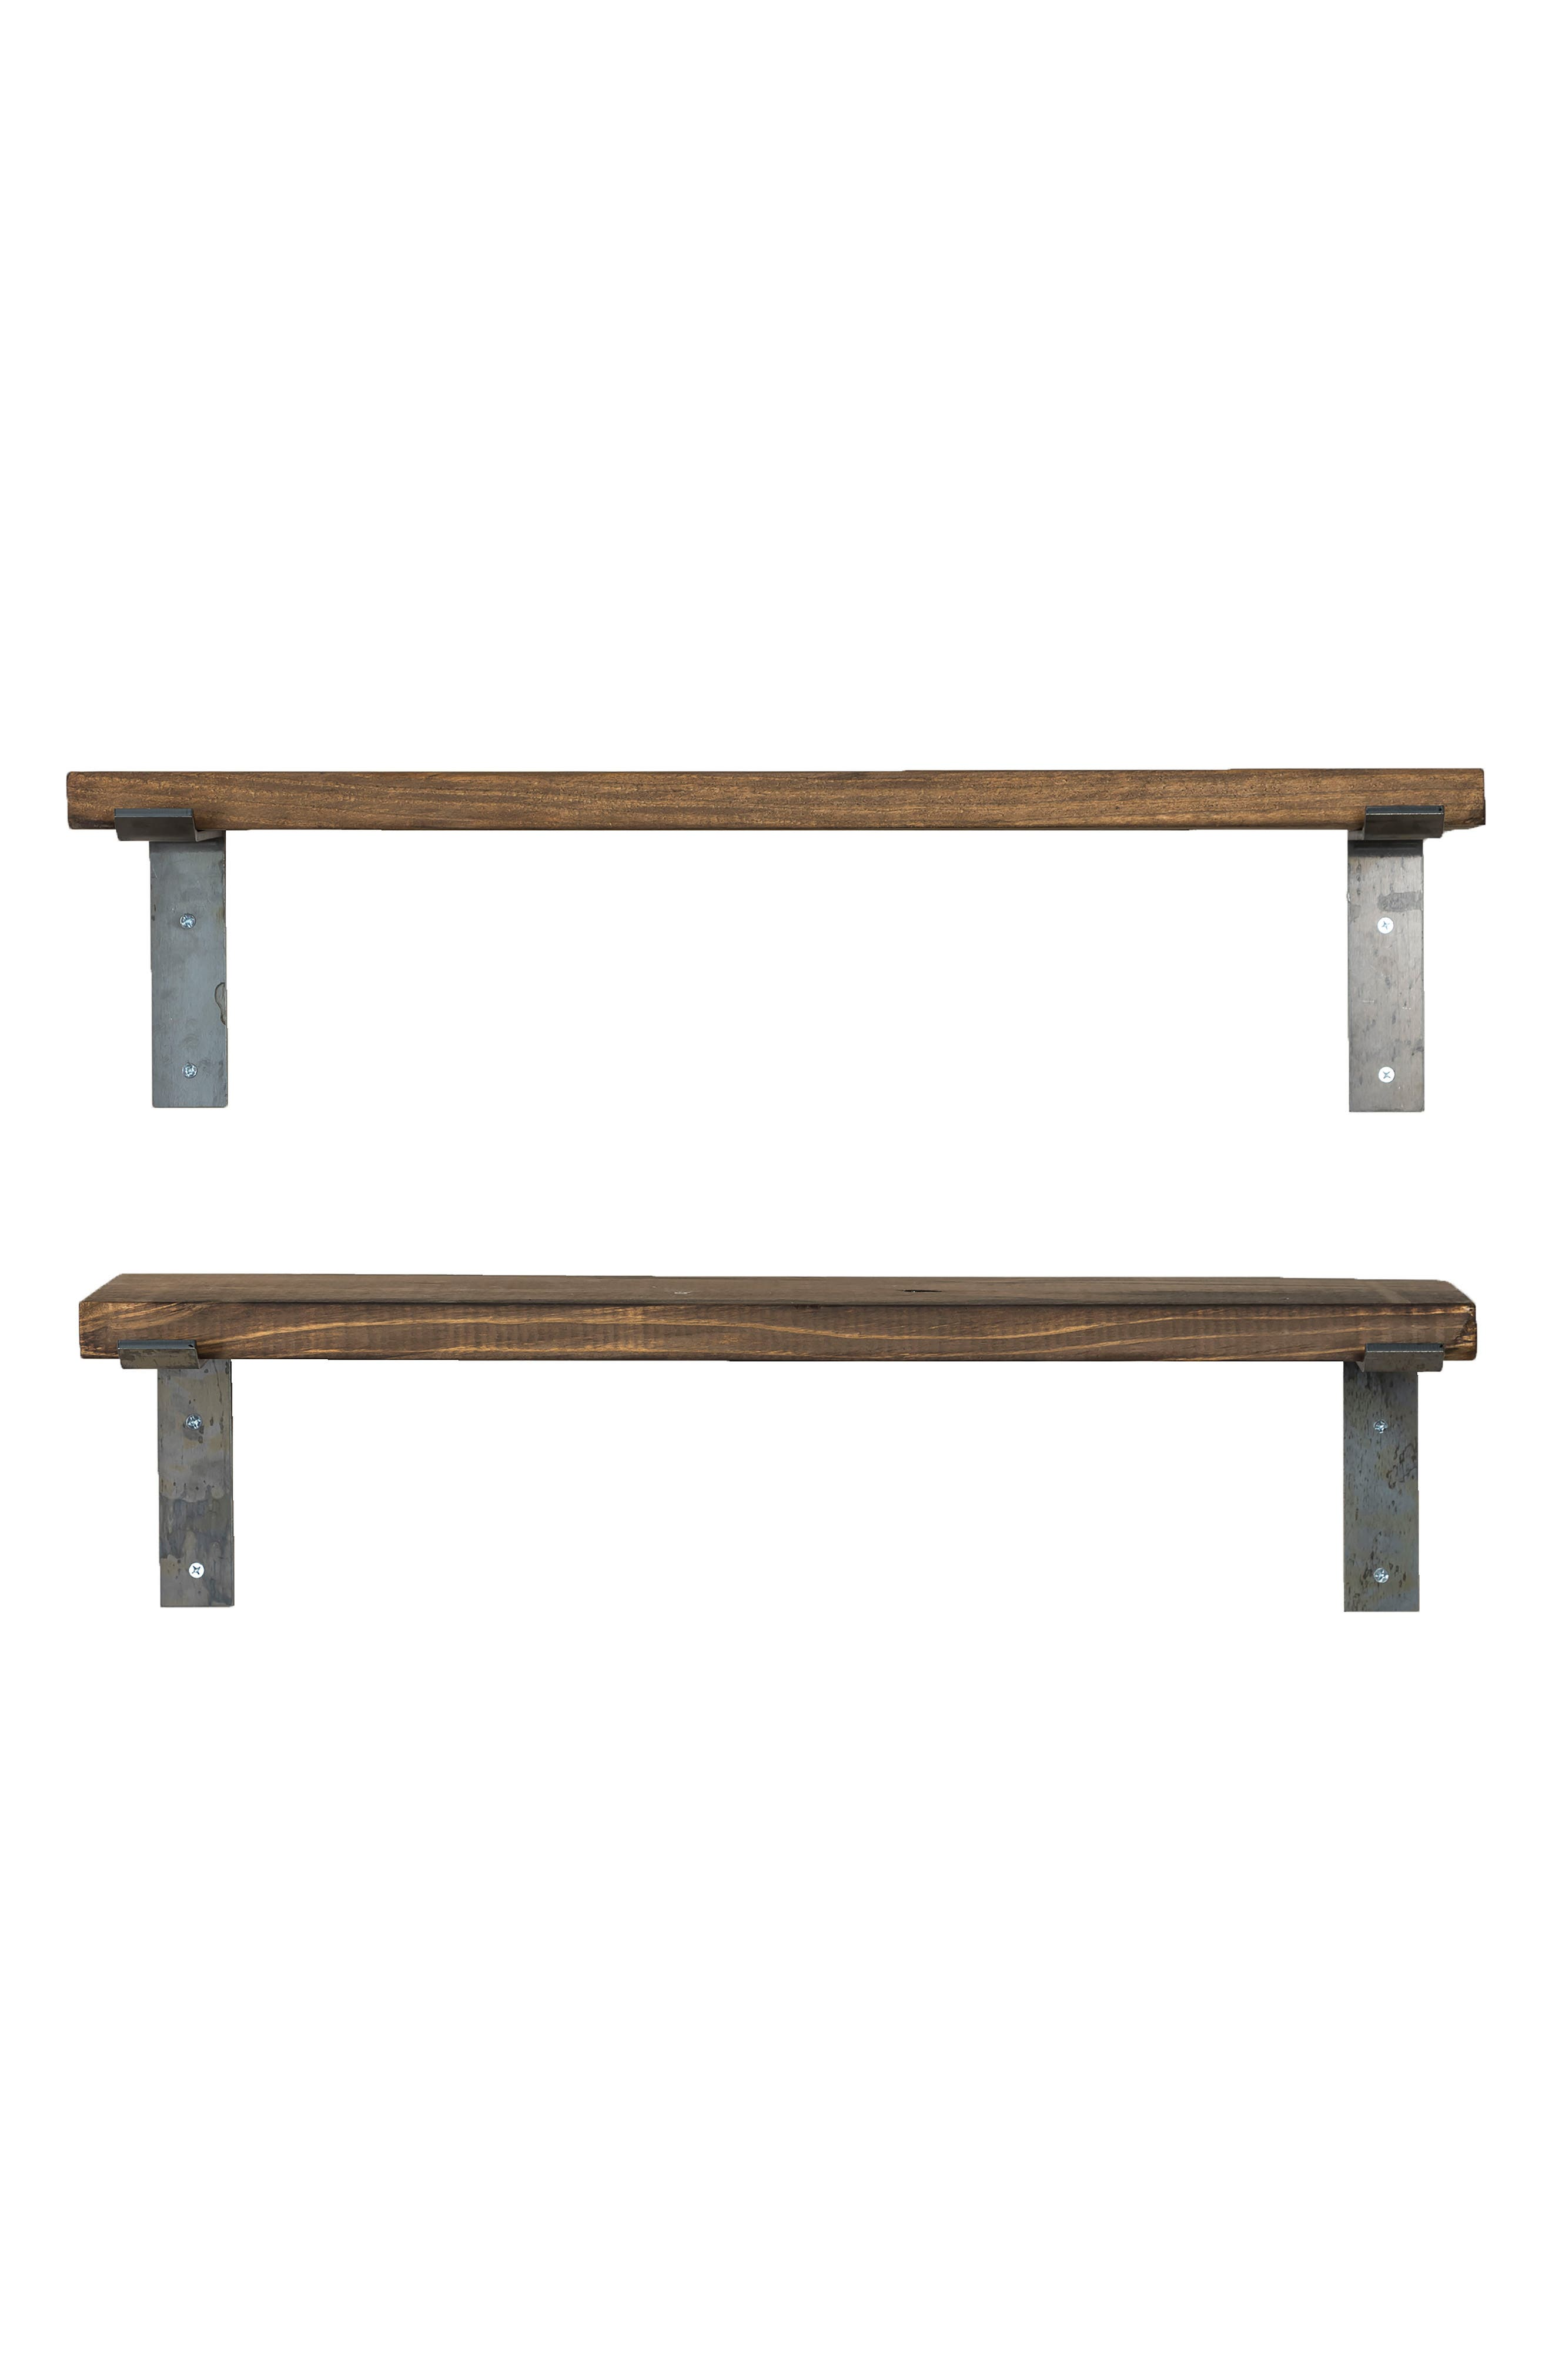 Set of 2 Industrial Bracket Shelves,                             Main thumbnail 1, color,                             Dark Walnut